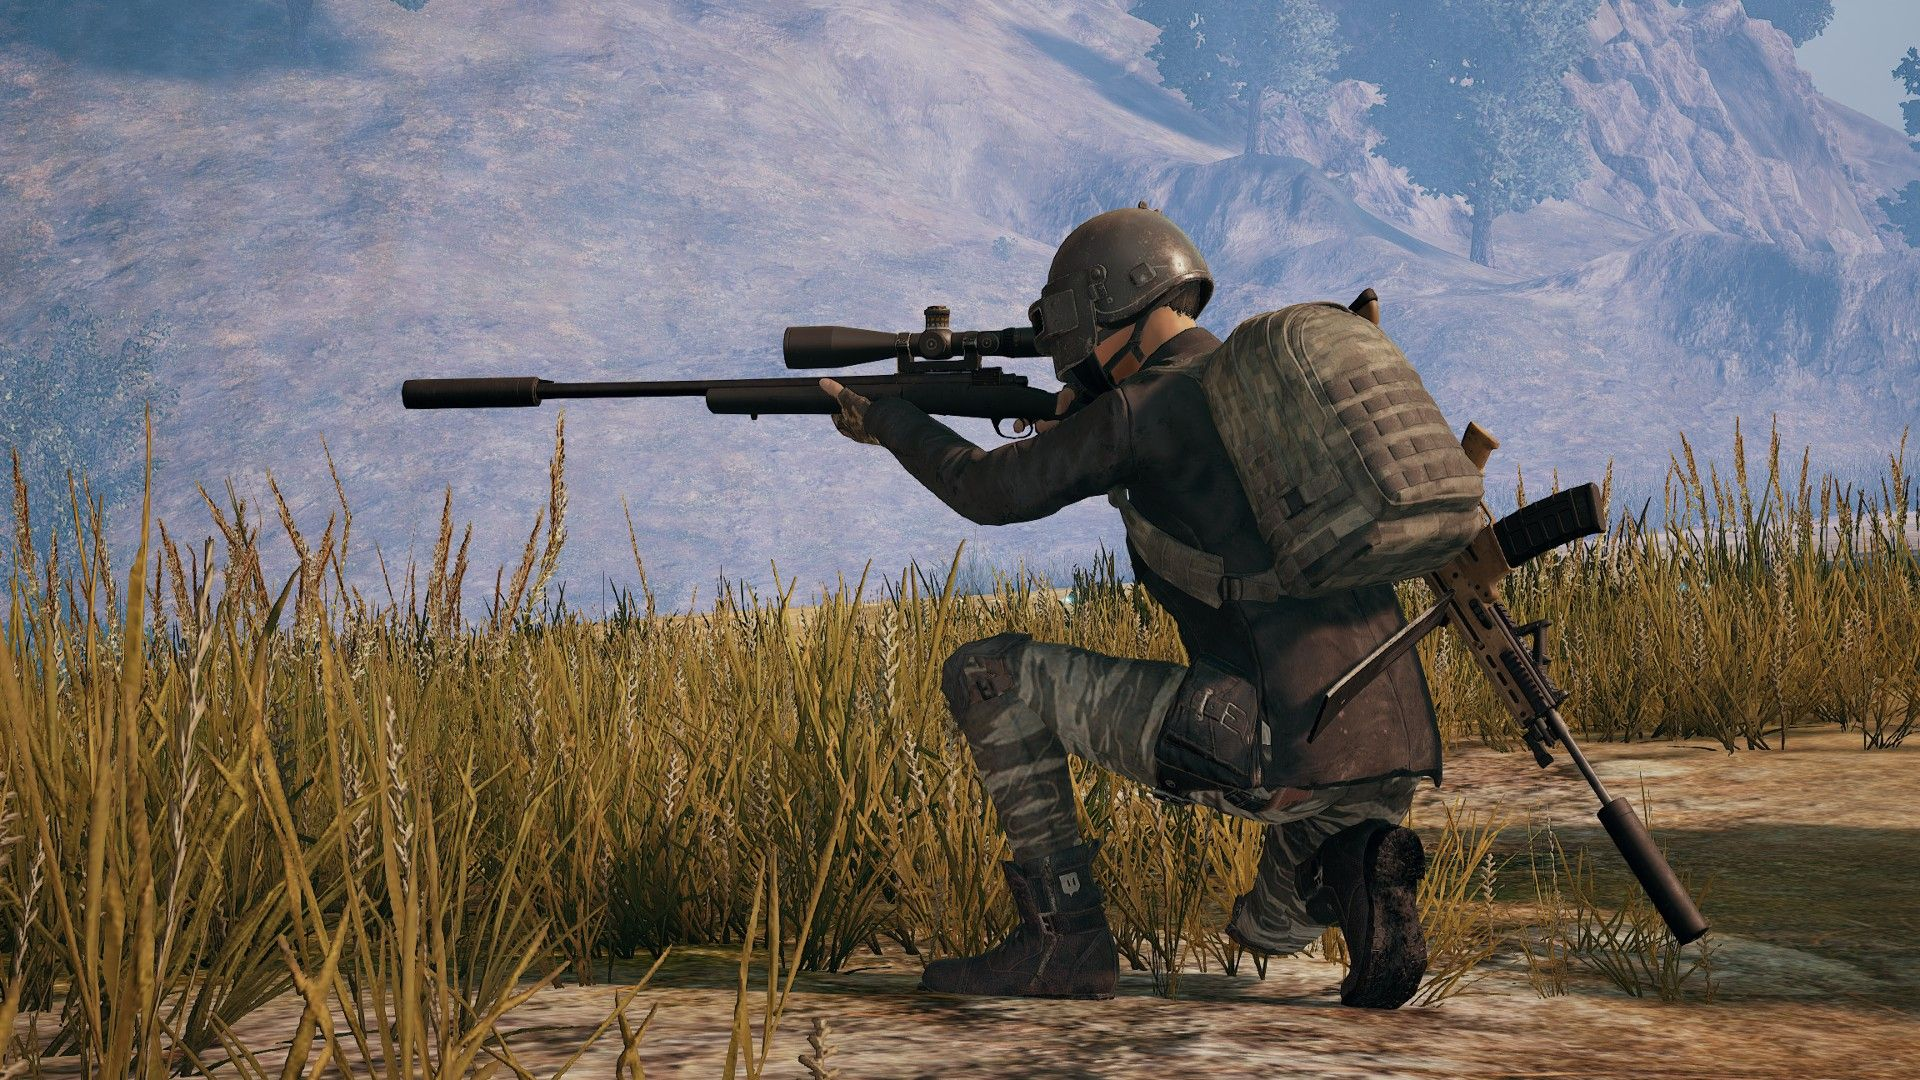 PUBG Sniper Wallpapers - Top Free PUBG Sniper Backgrounds